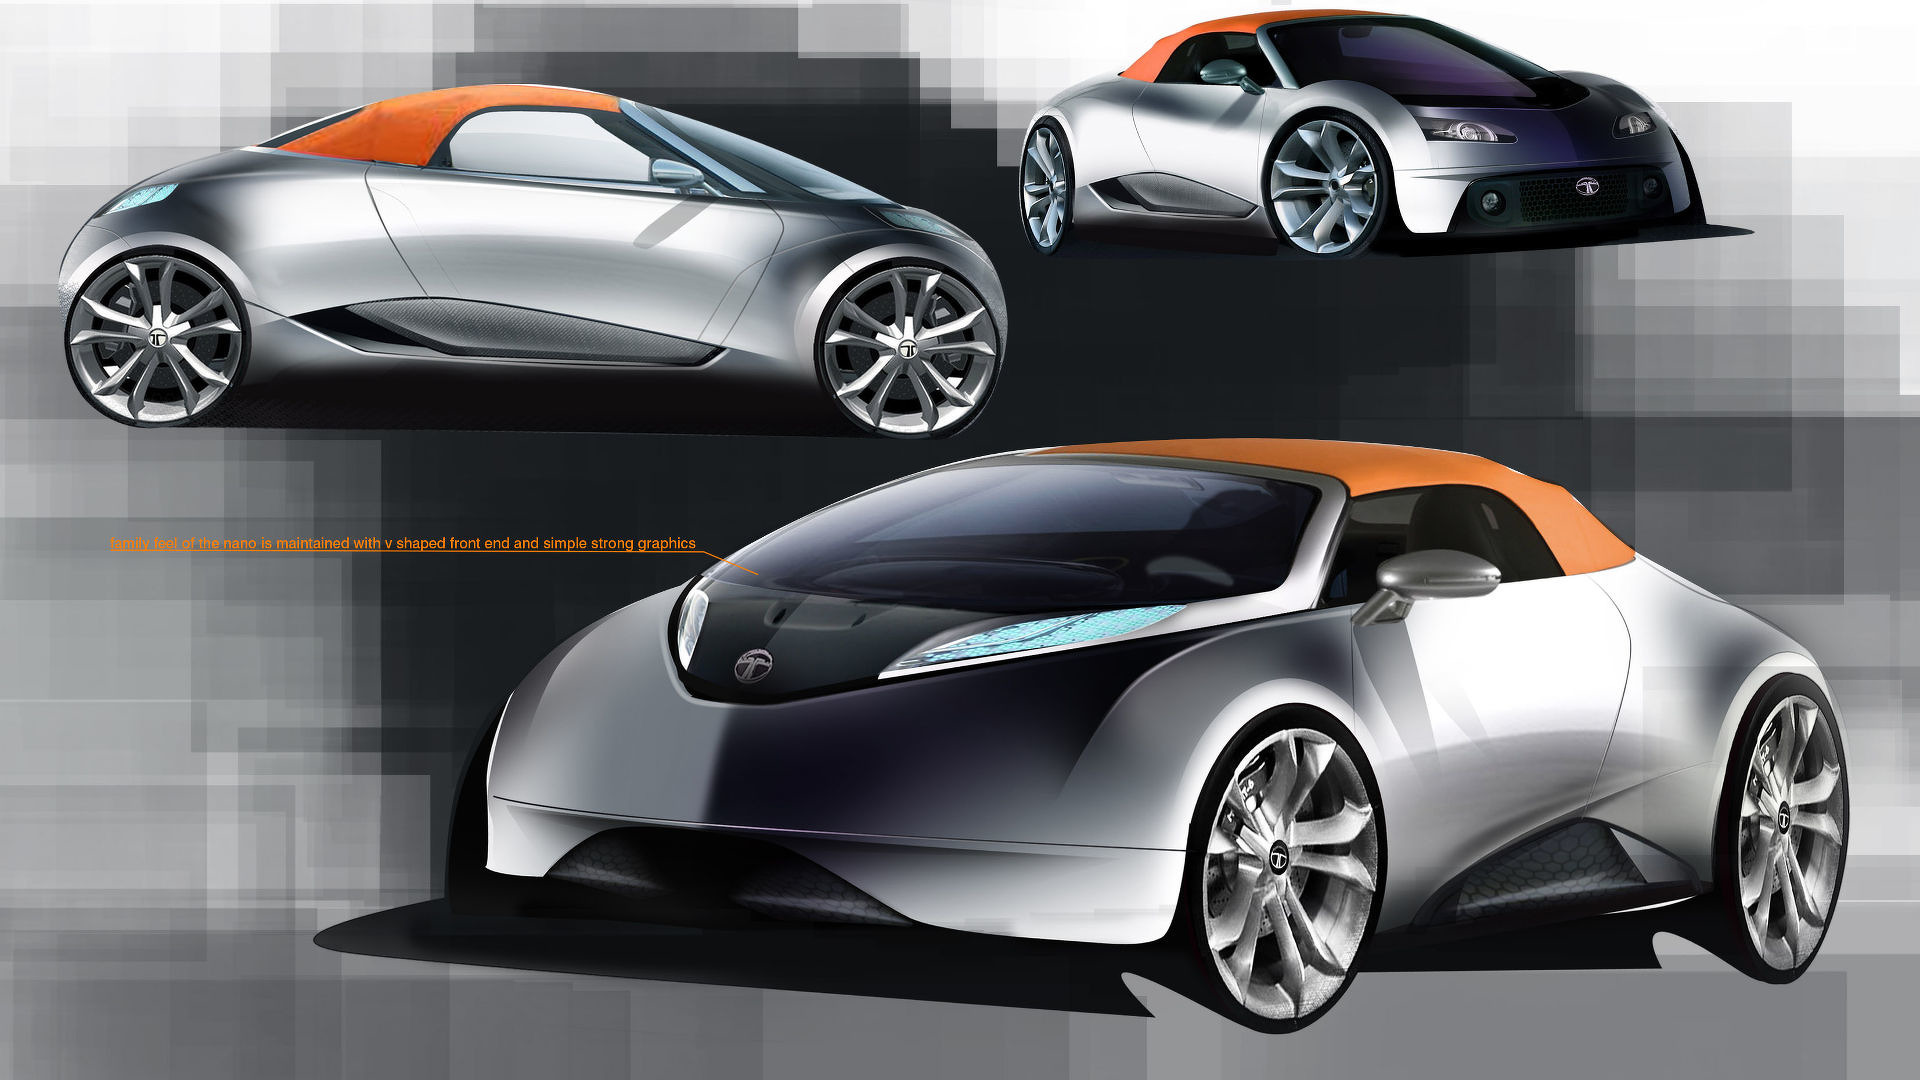 Tata Sub-brand's Rumored Sports Car Concept May Change Low